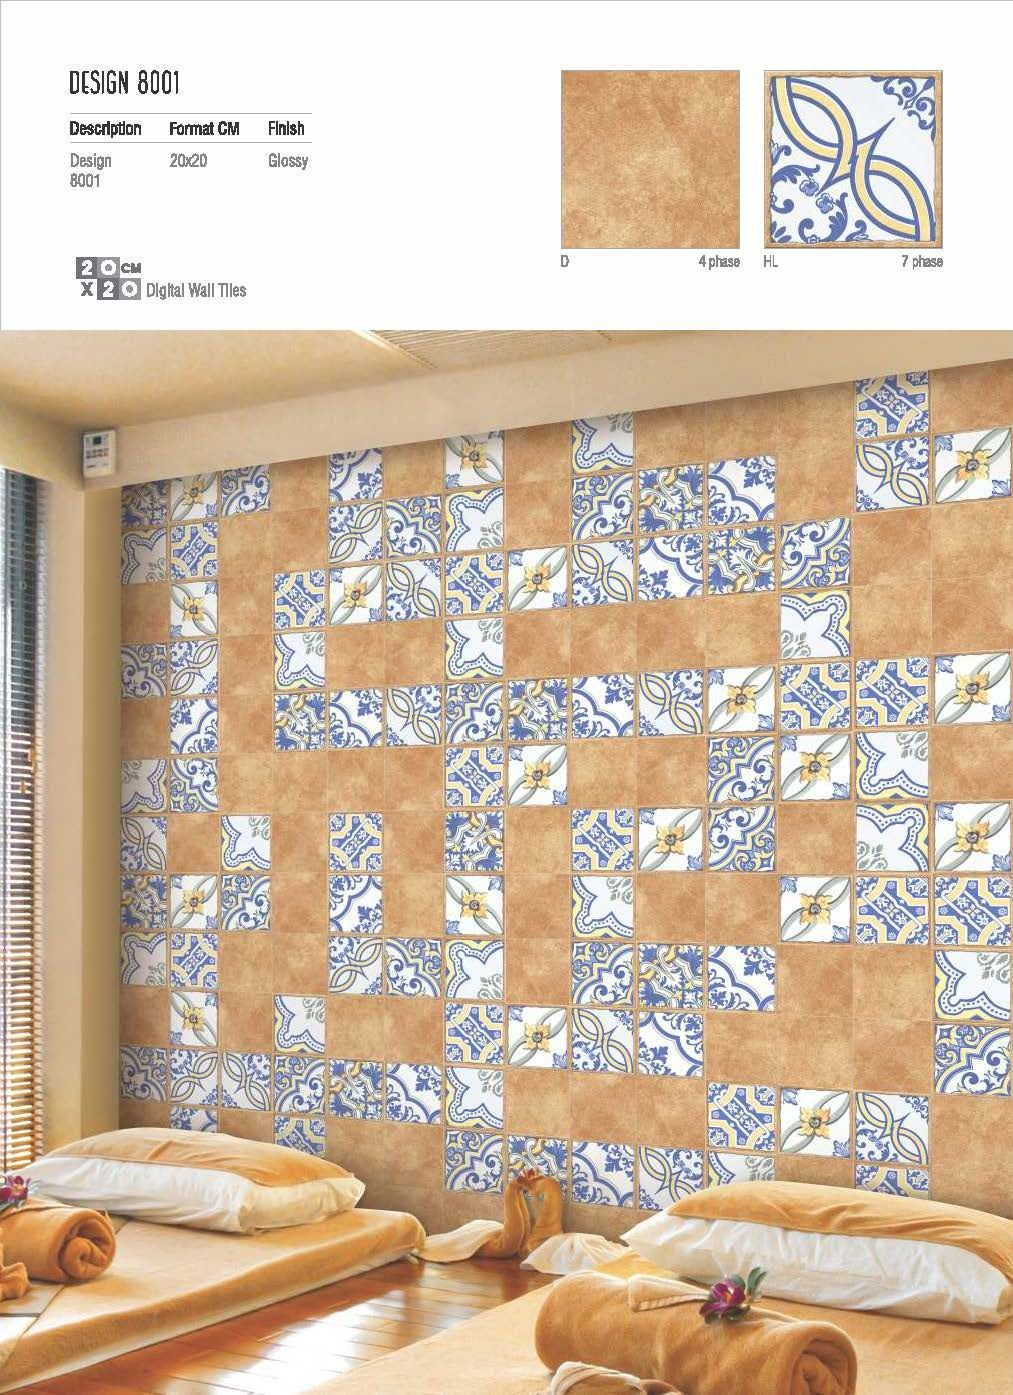 Magnificent Manufacturers X Digital Wall X Digital Paul Boucher International Wholesale Tile International Wholesale Tile Medallions X Digital Wall X Digital X Gvt X Pgvt Tiles Manufacturers